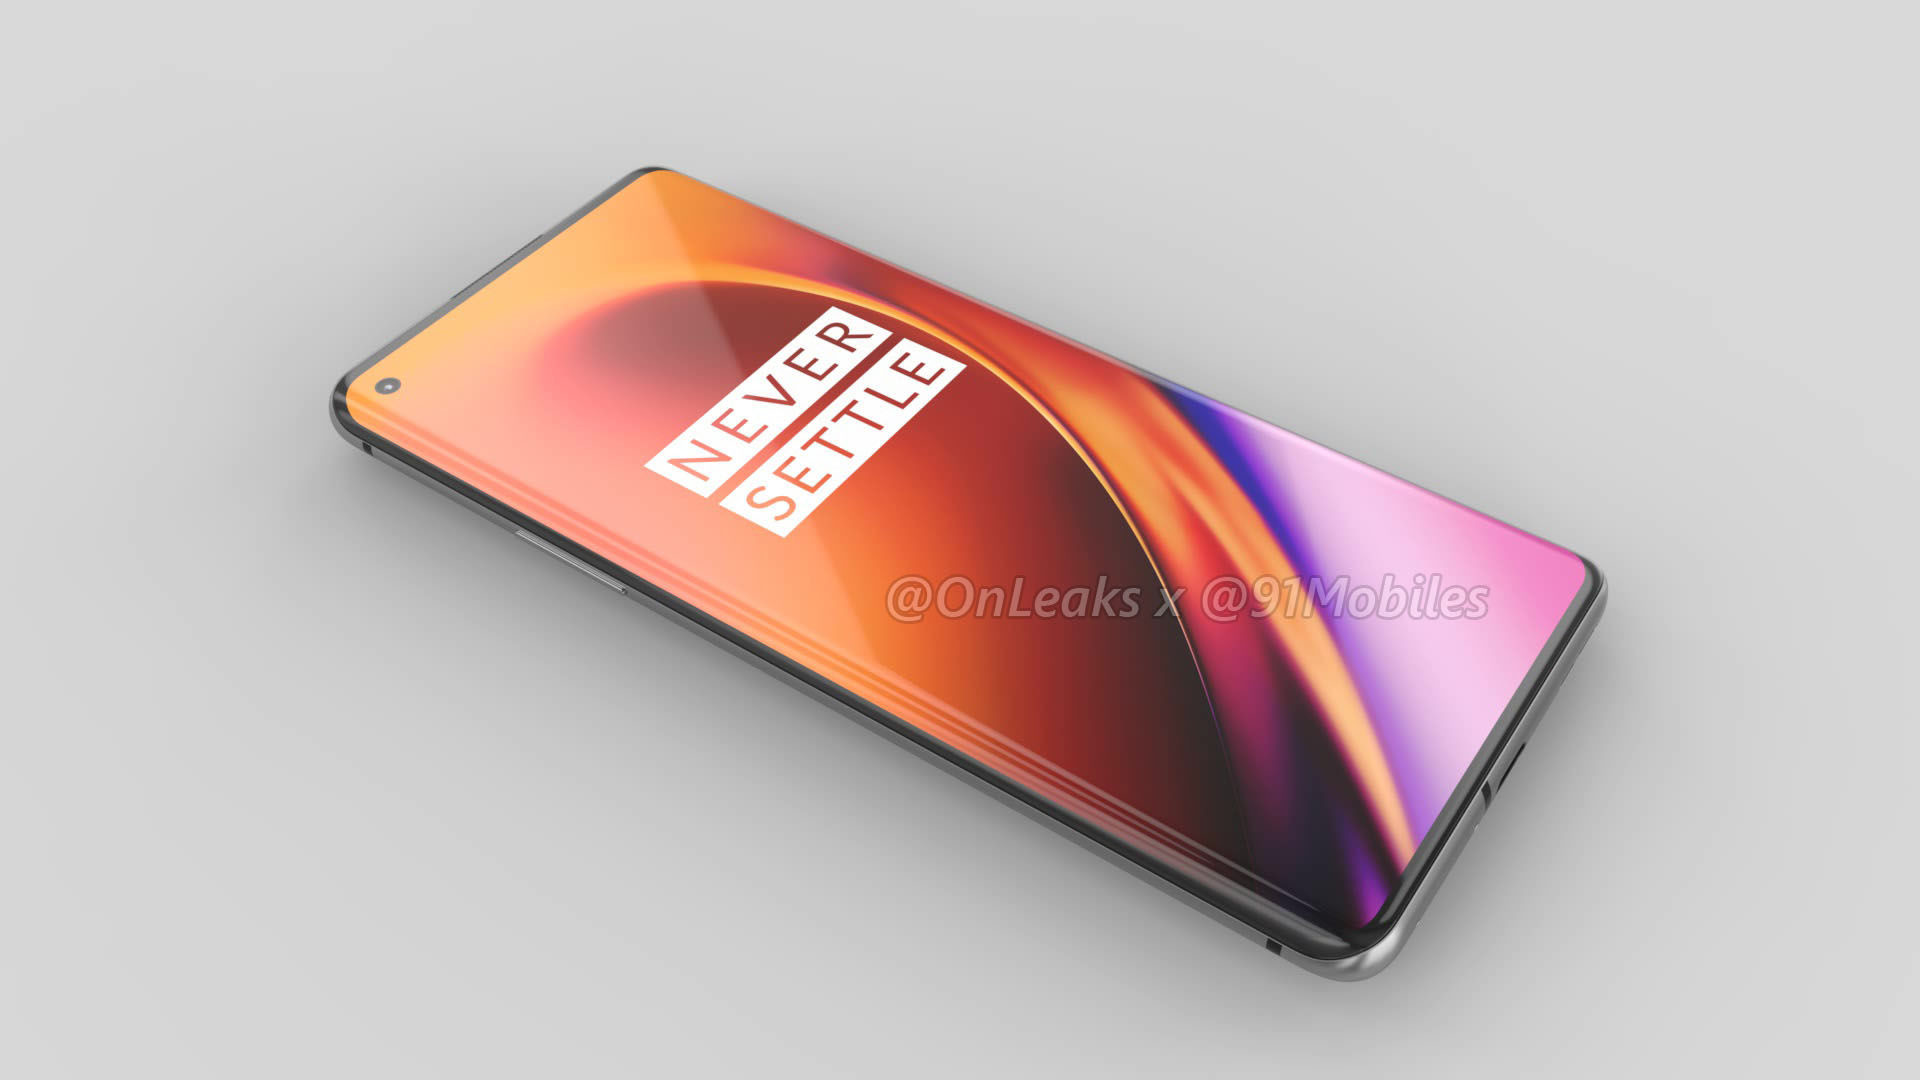 renders of OnePlus 8 Pro have surfaced online by OnLeaks in collaboration with 91mobiles.